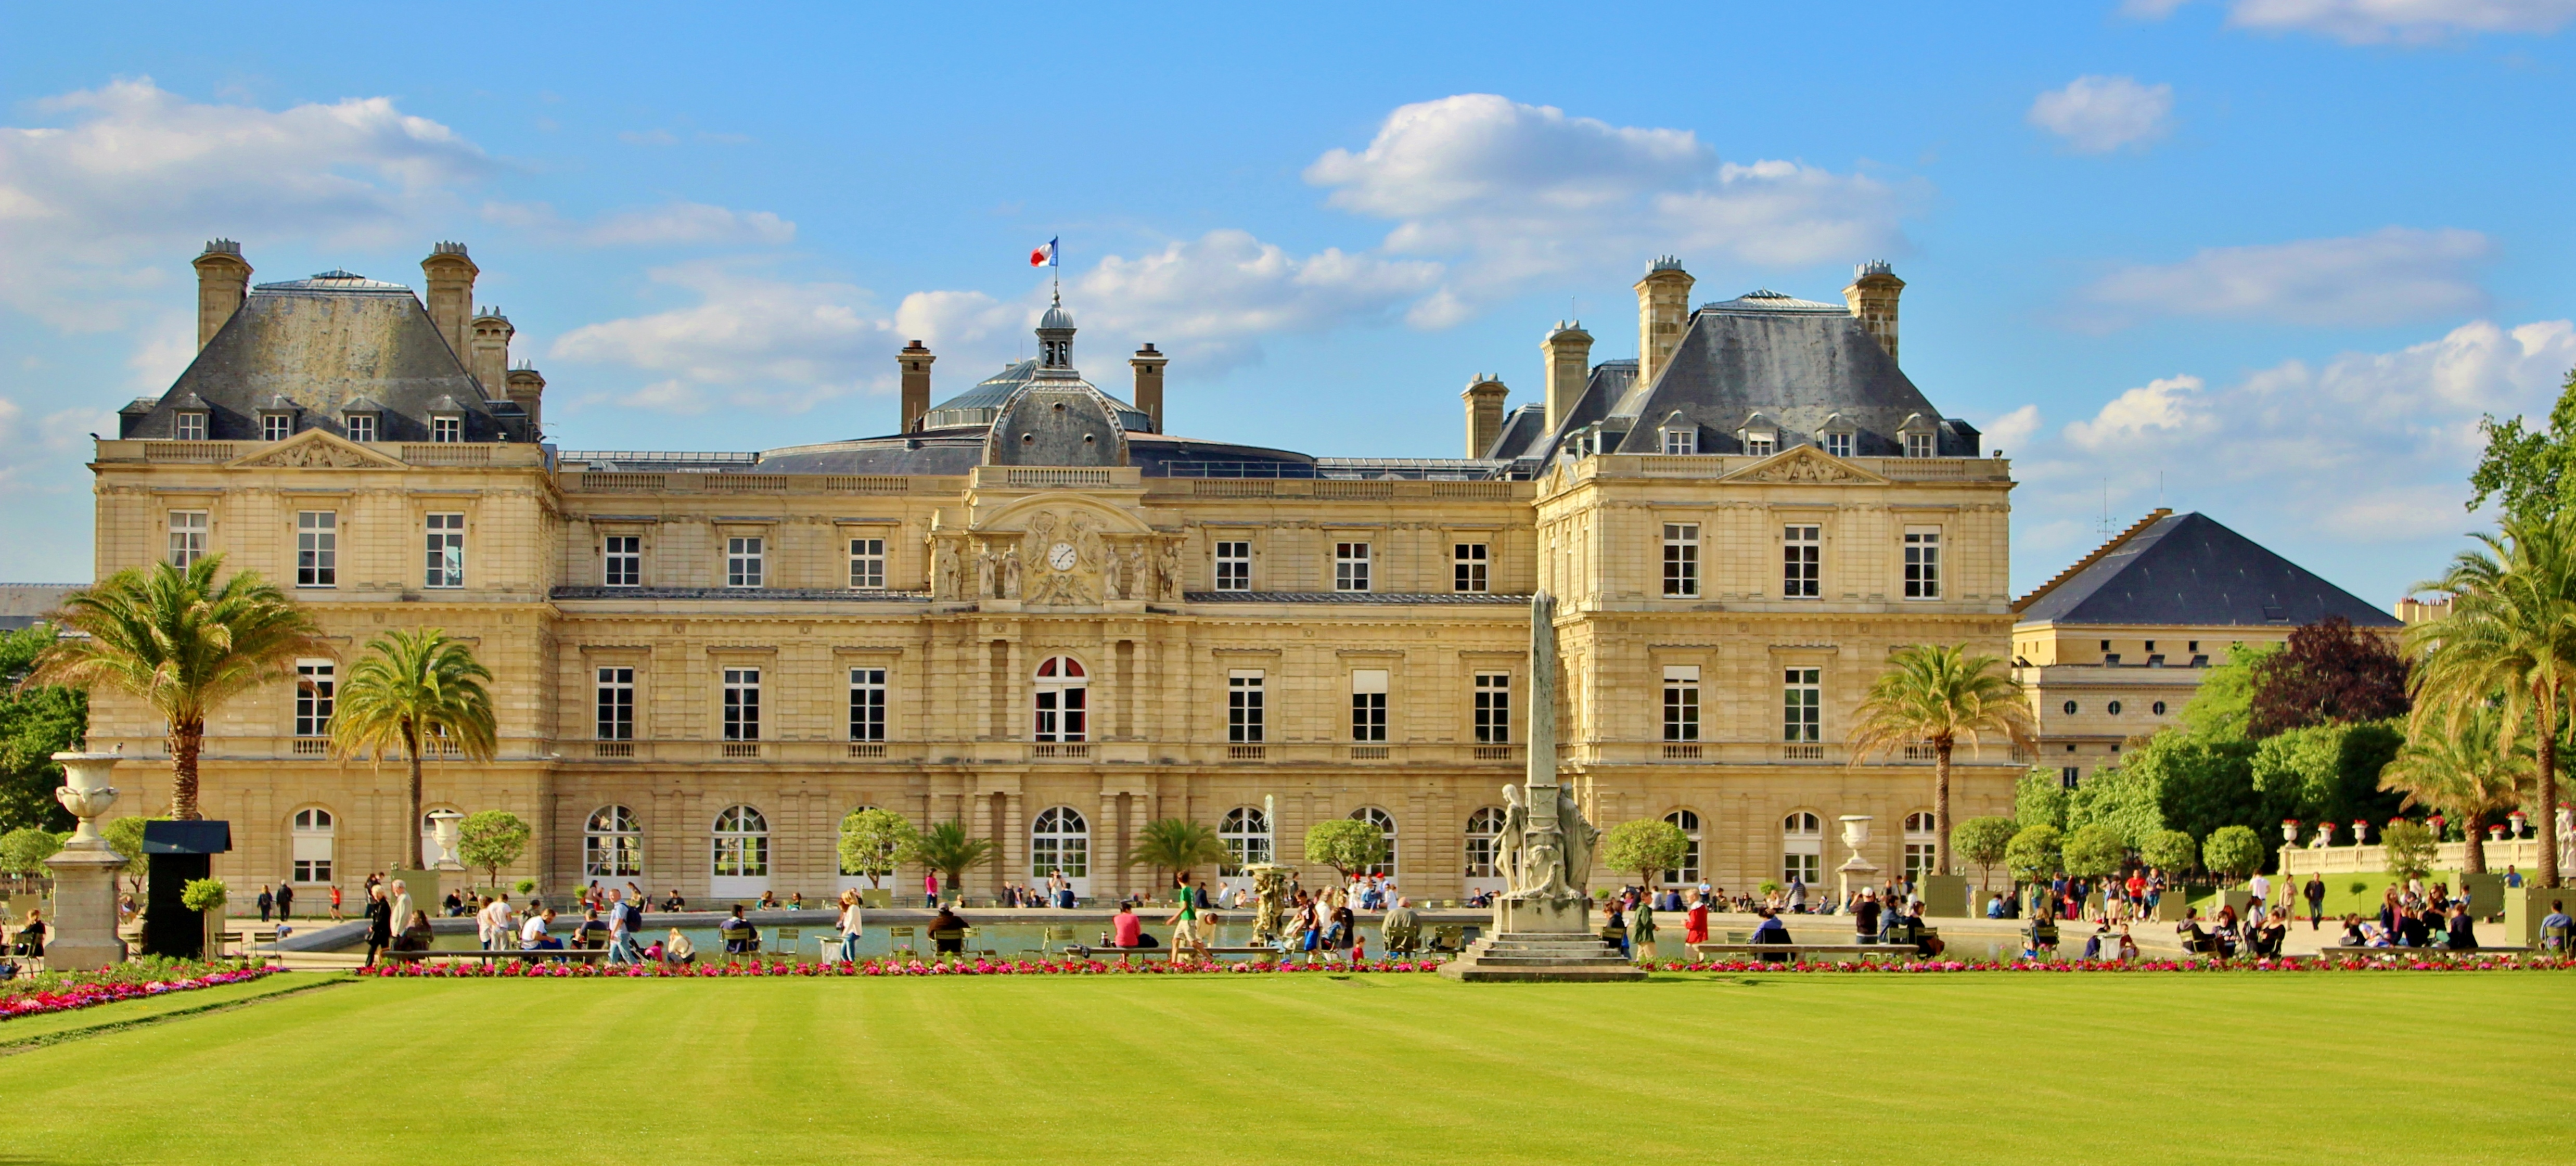 File Le Jardin du Luxembourg Paris France panoramio 26